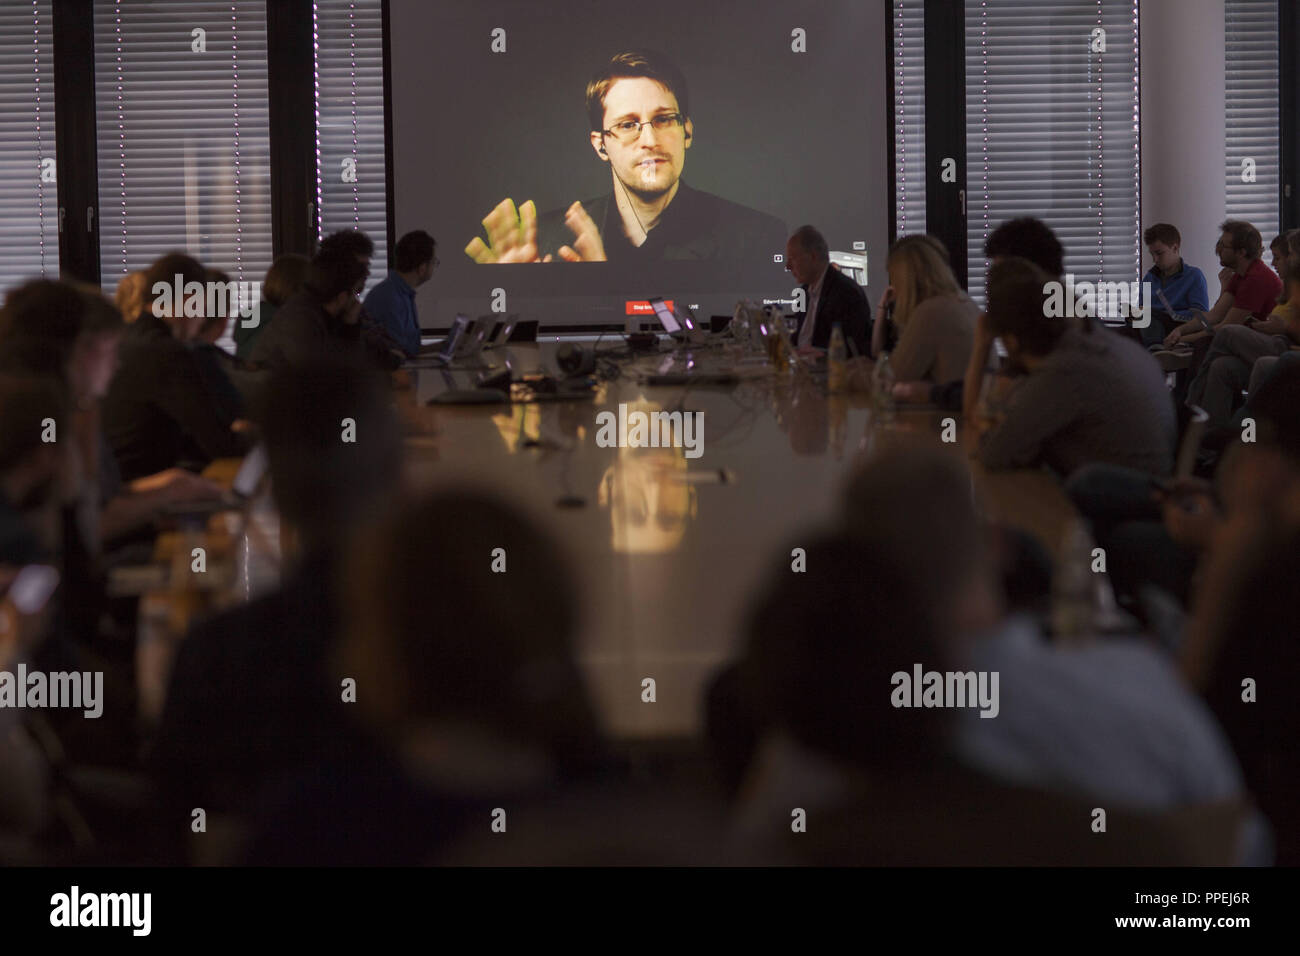 As part of the Editor'S Lab Congress of the Sueddeutsche Zeitung (SZ) and the Global Editors Network (GEN), the US-American journalist and GEN board member Dan Gillmor (far right in the background) conducts a virtual live interview with the whistleblower Edward Snowden. - Stock Image